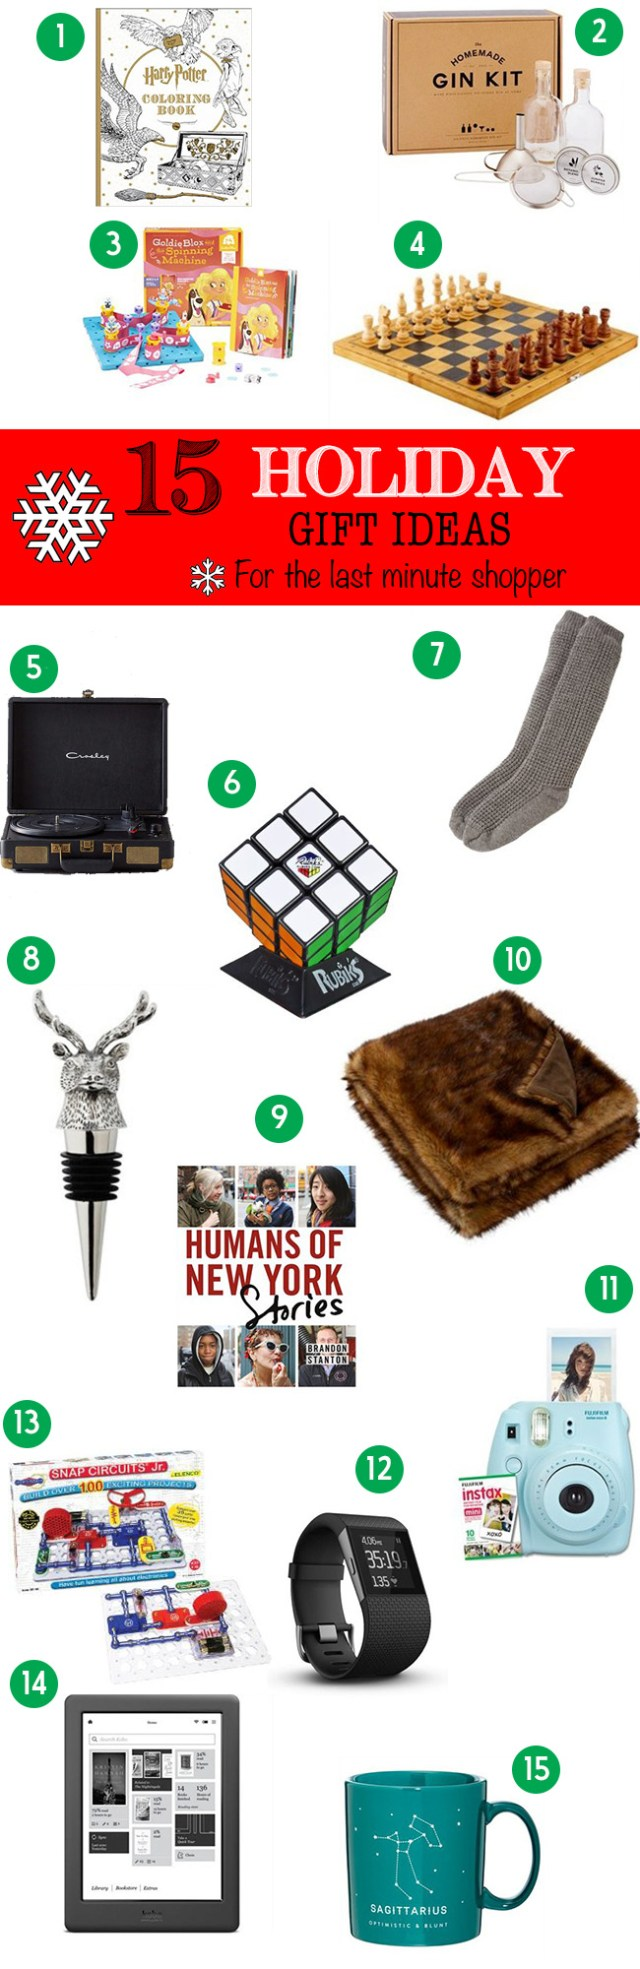 15 Last Minute Gift Ideas for Christmas